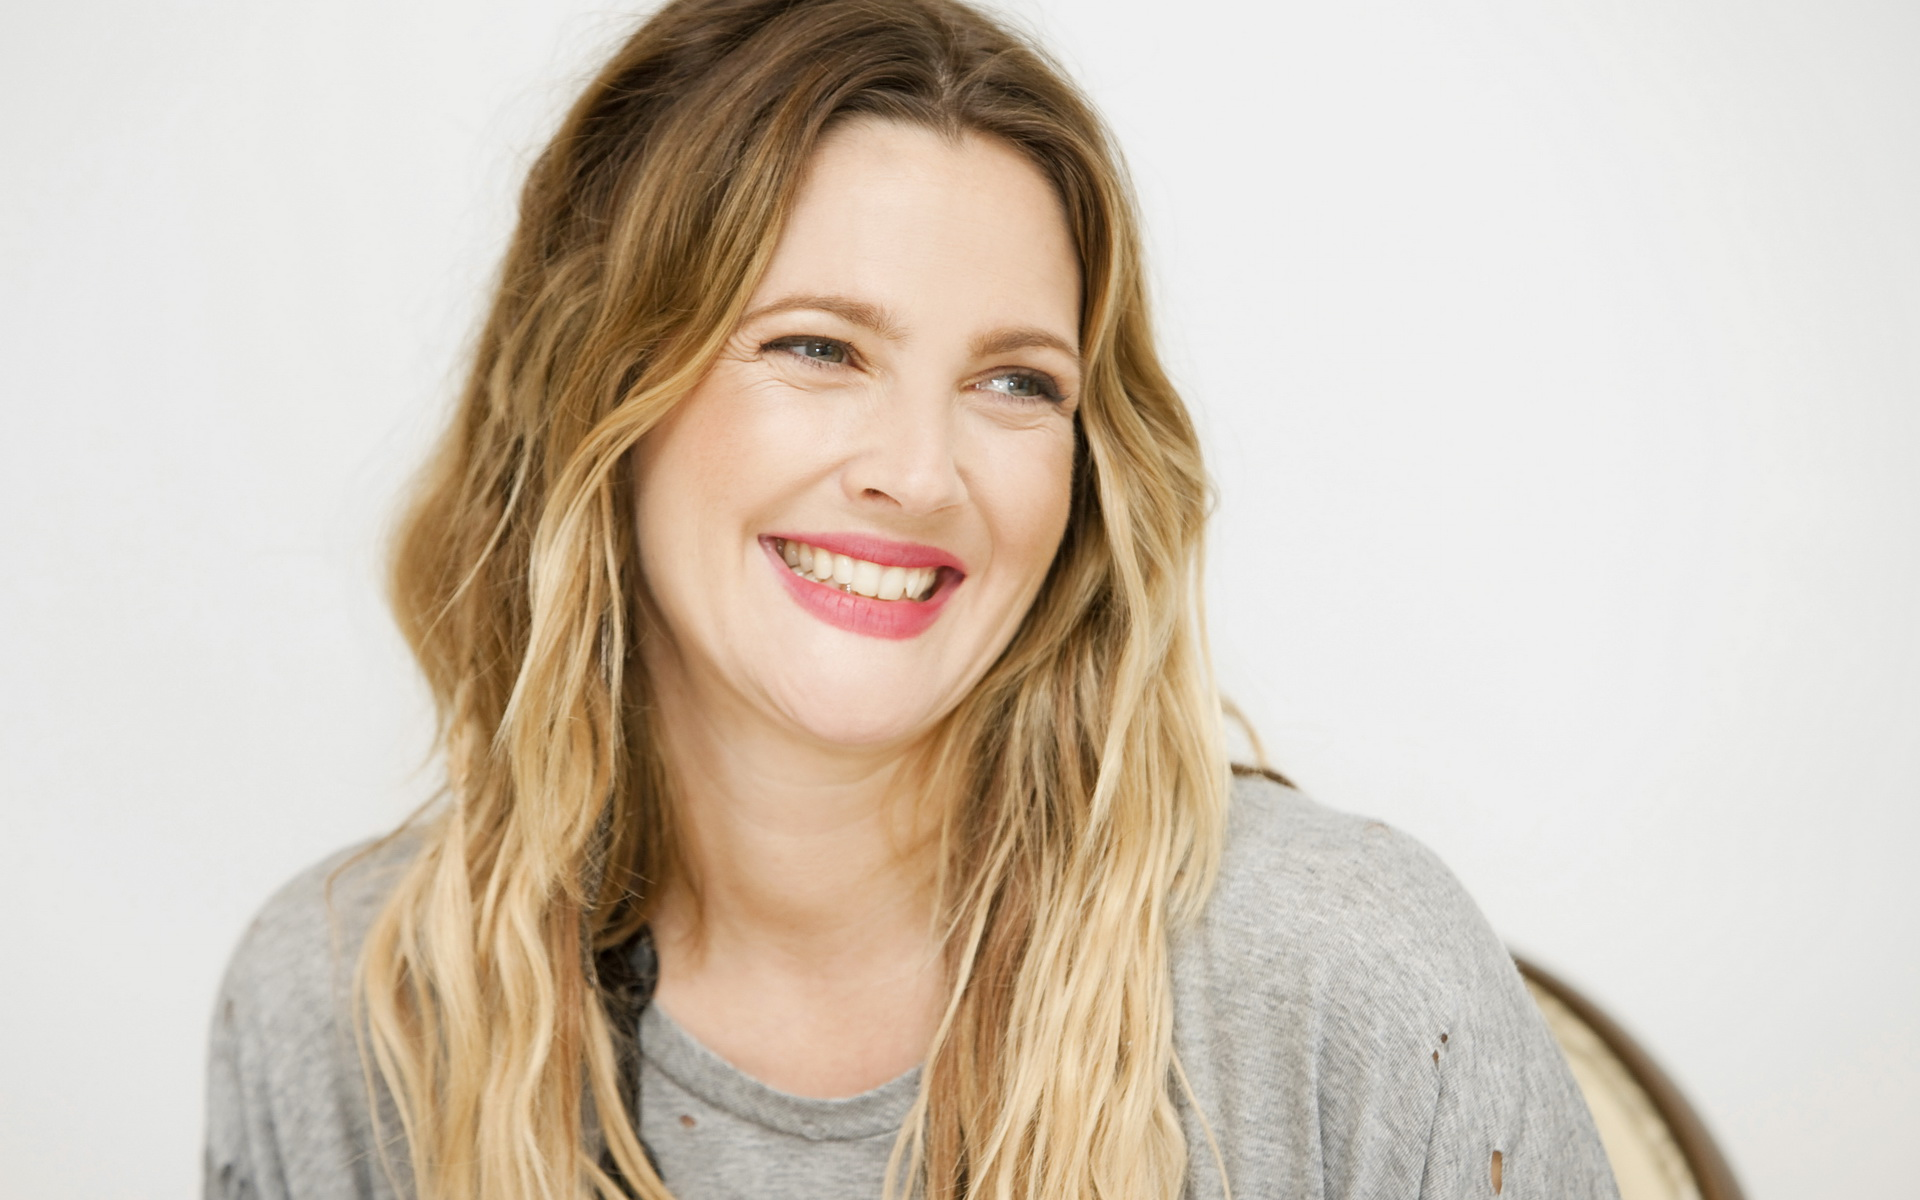 Interview With Drew Barrymore, 1-25-17 | The Social Justice Project